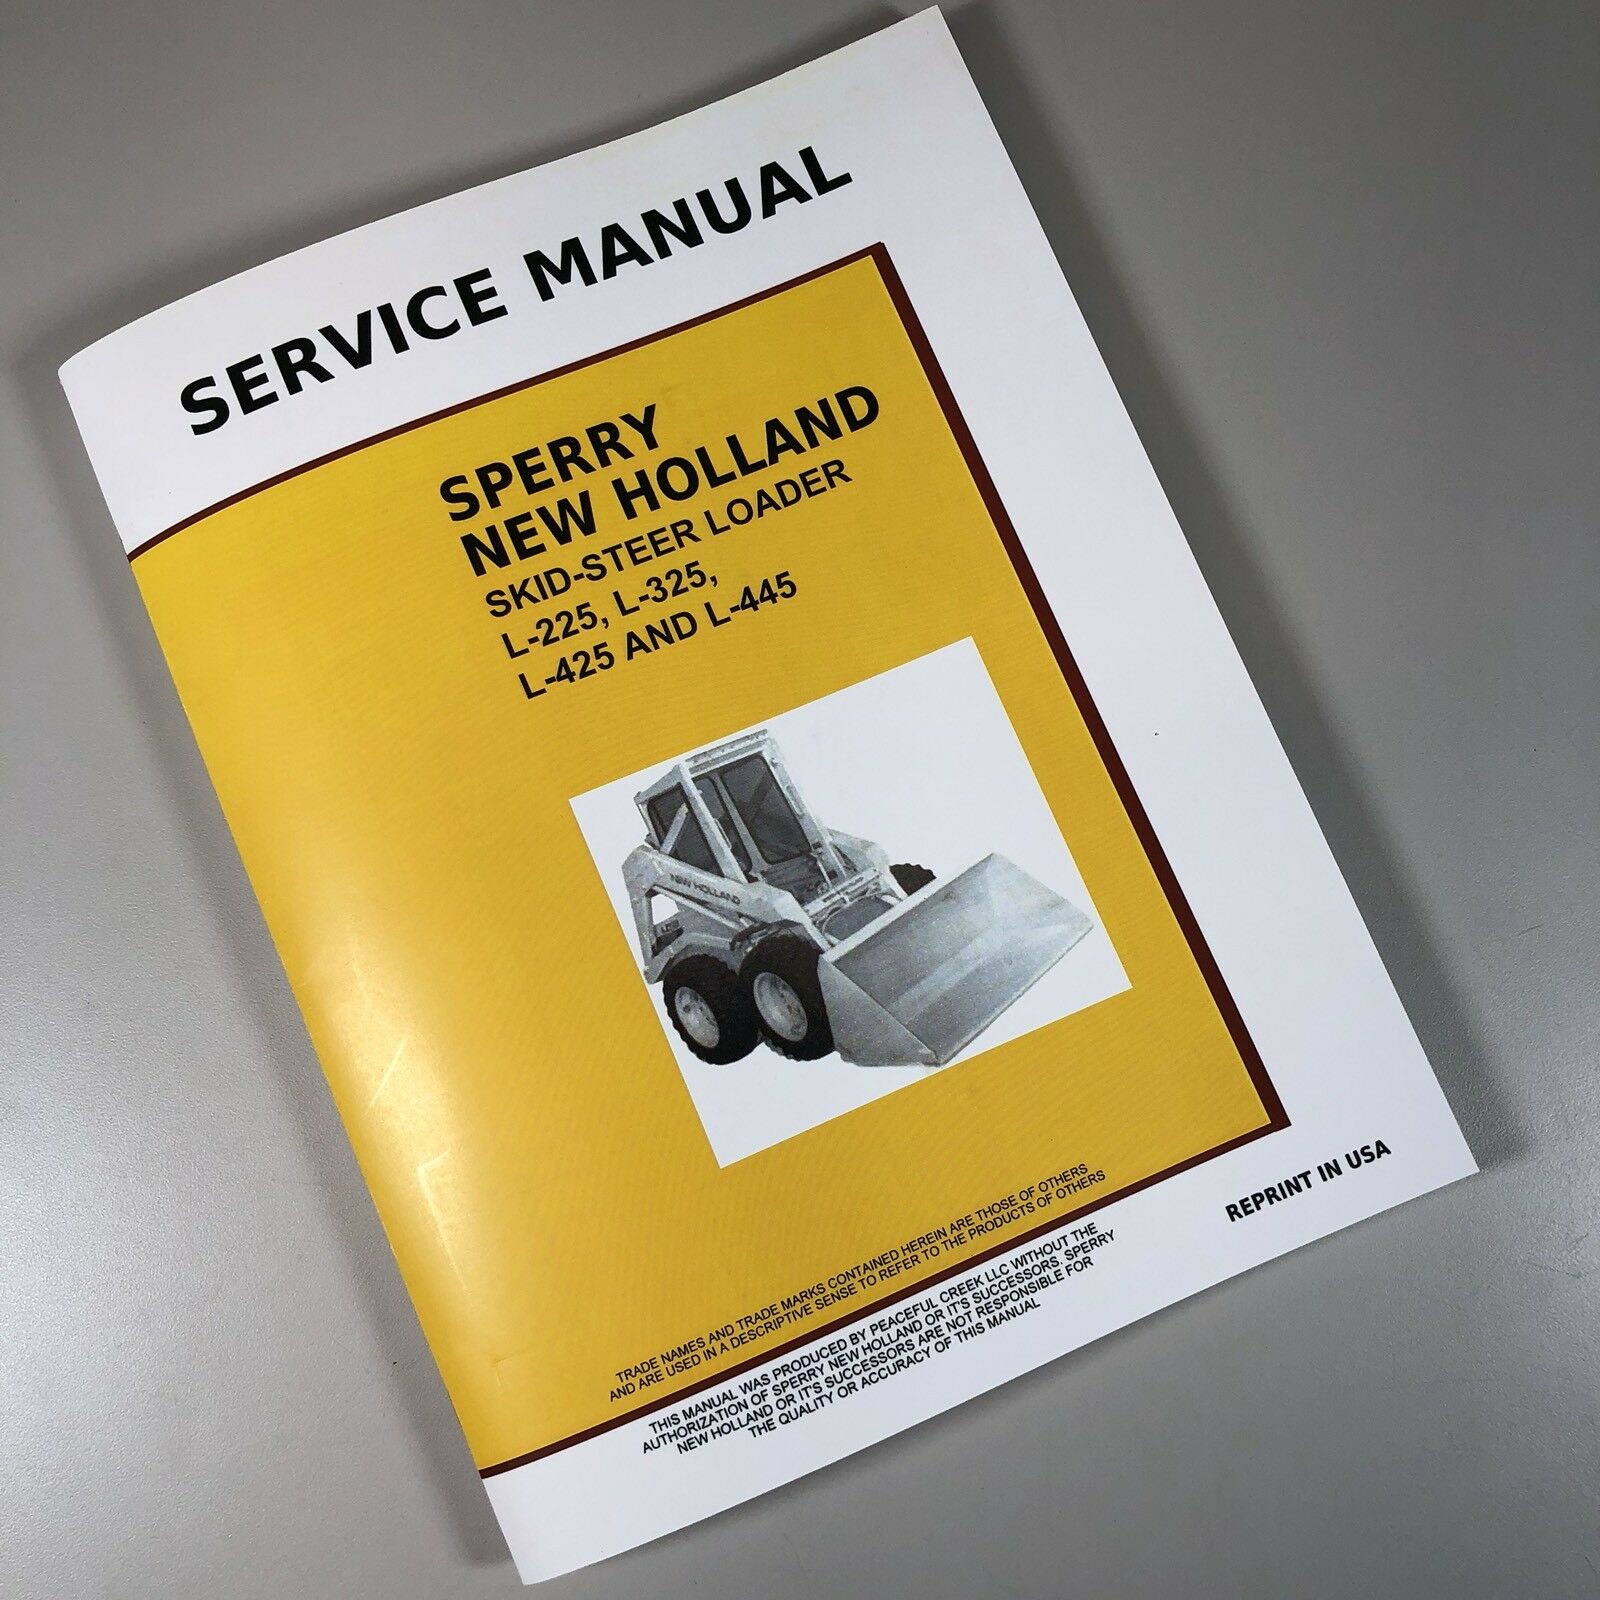 New Holland L225 L325 L425 L445 Skid Steer Service Manual Shop Repair  Overhaul 1 of 6FREE Shipping See More